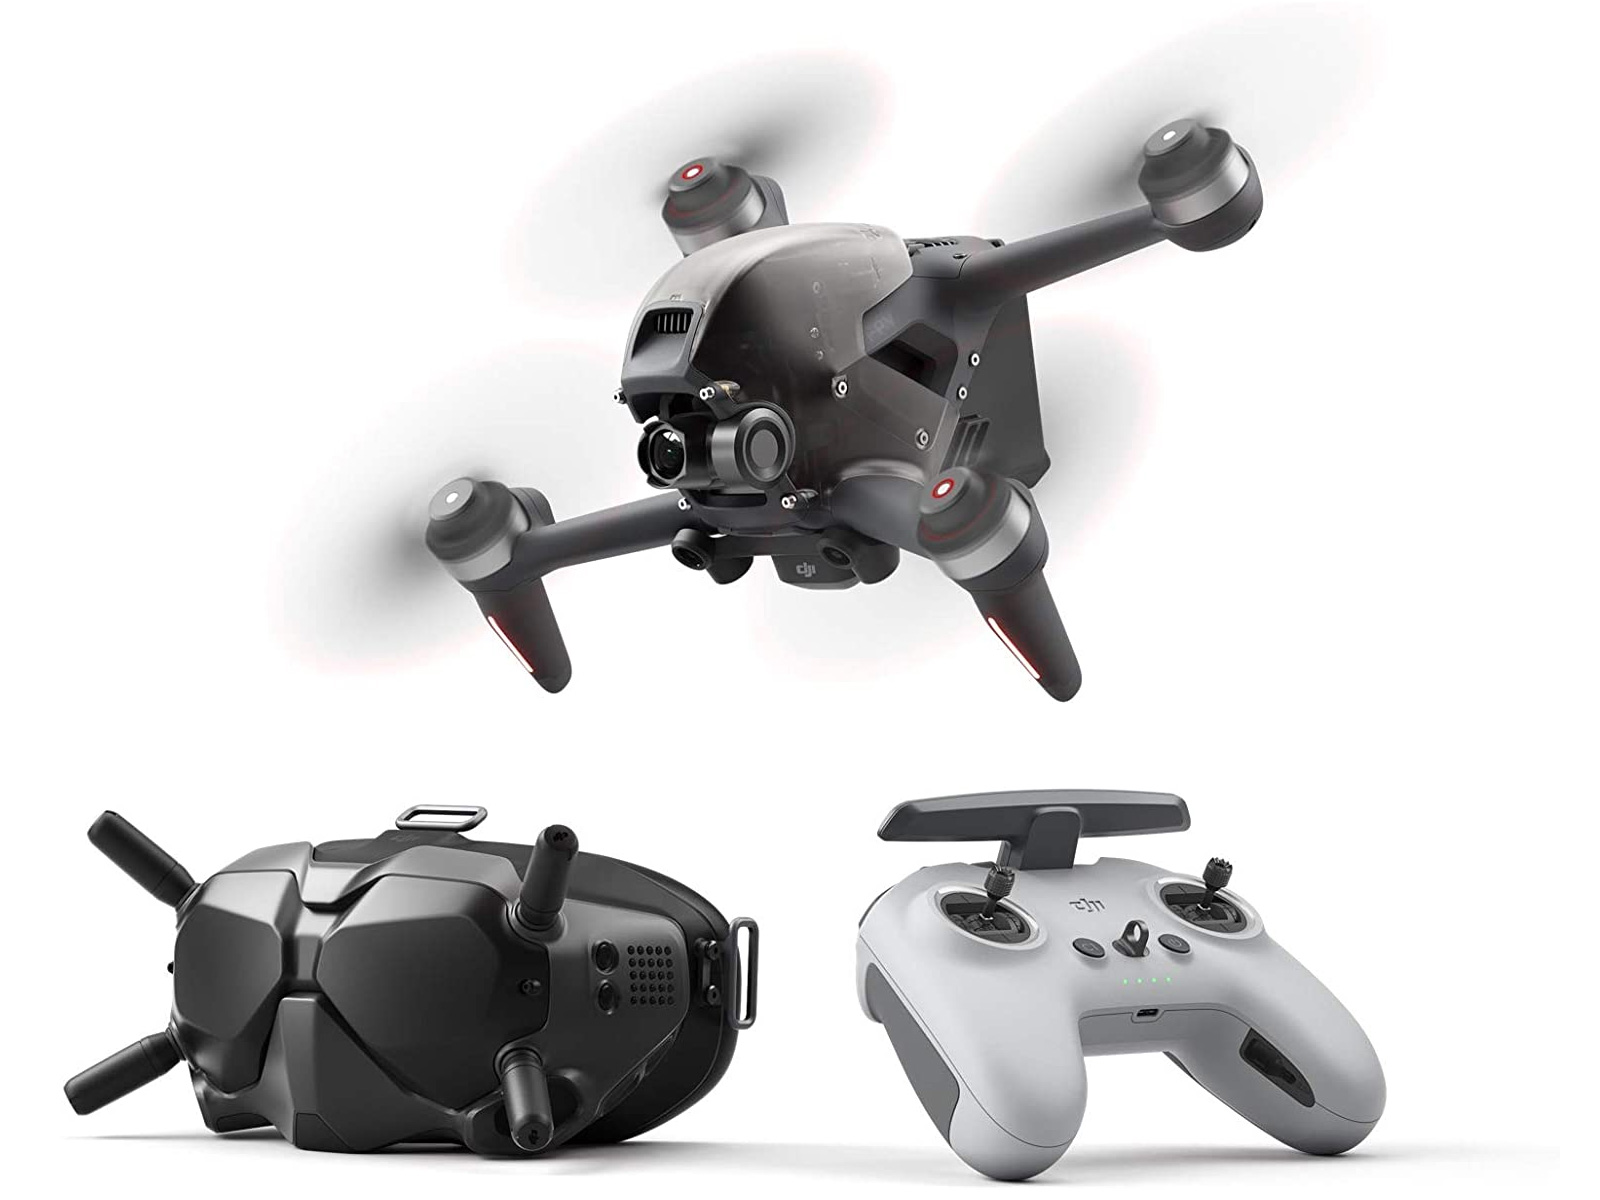 DJI Sends Up Beginner-Friendly, All-In-One FPV Drone at werd.com